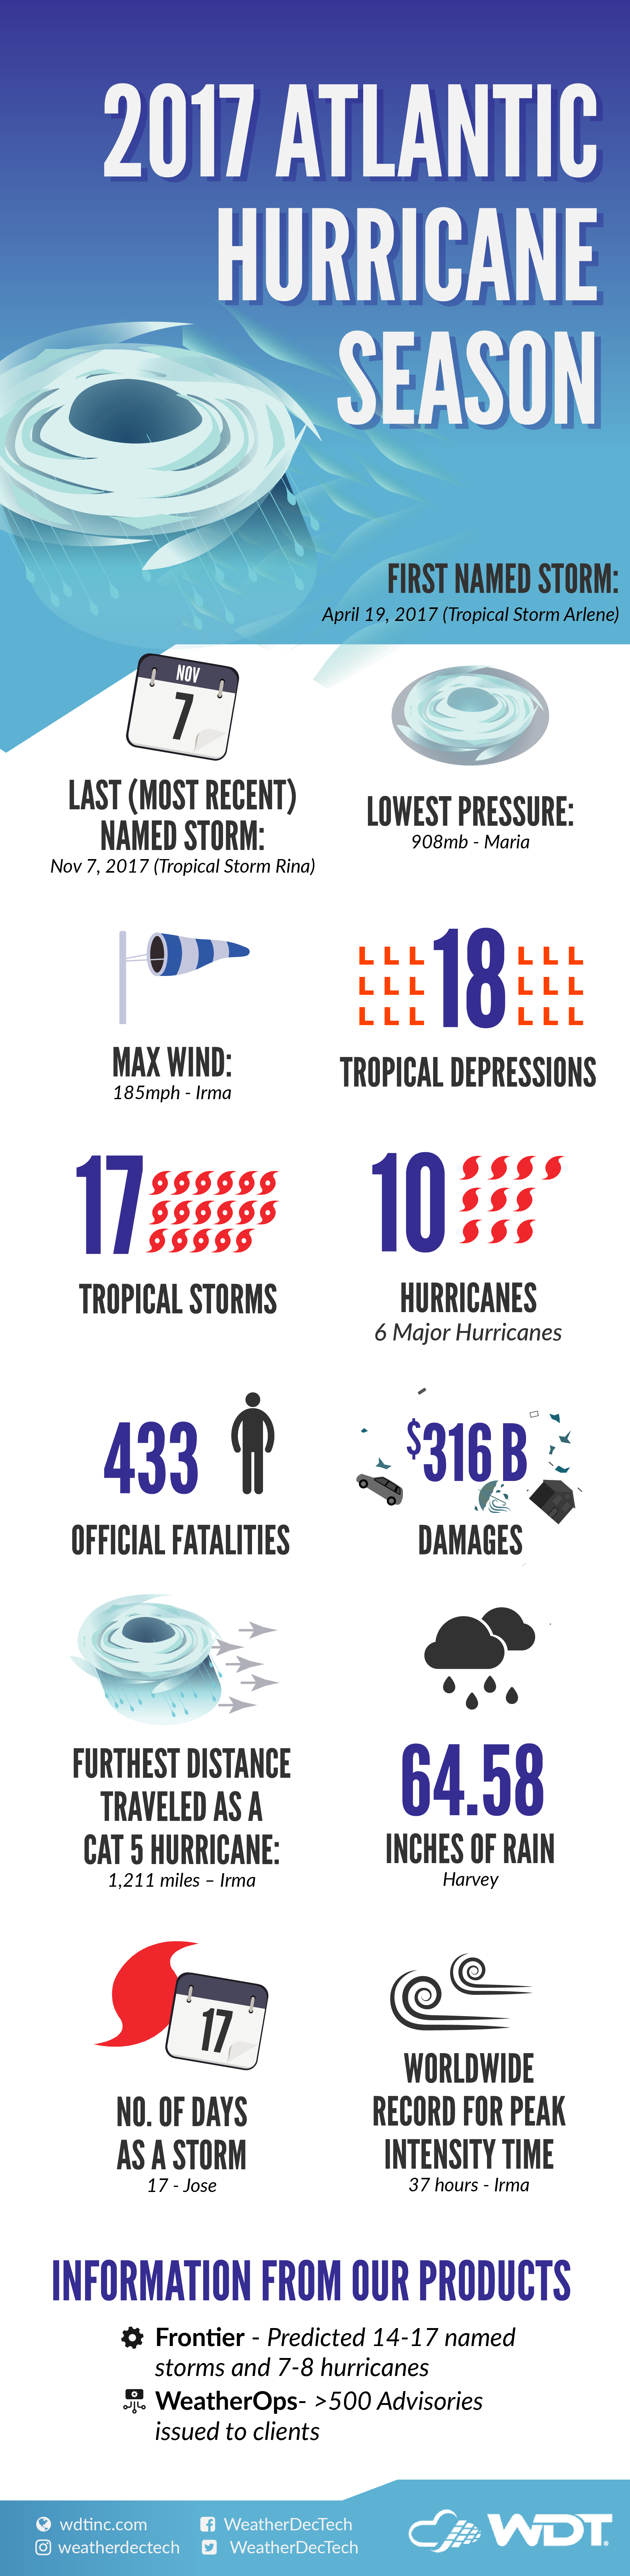 The Entire 2017 Atlantic Hurricane Season in One Infographic